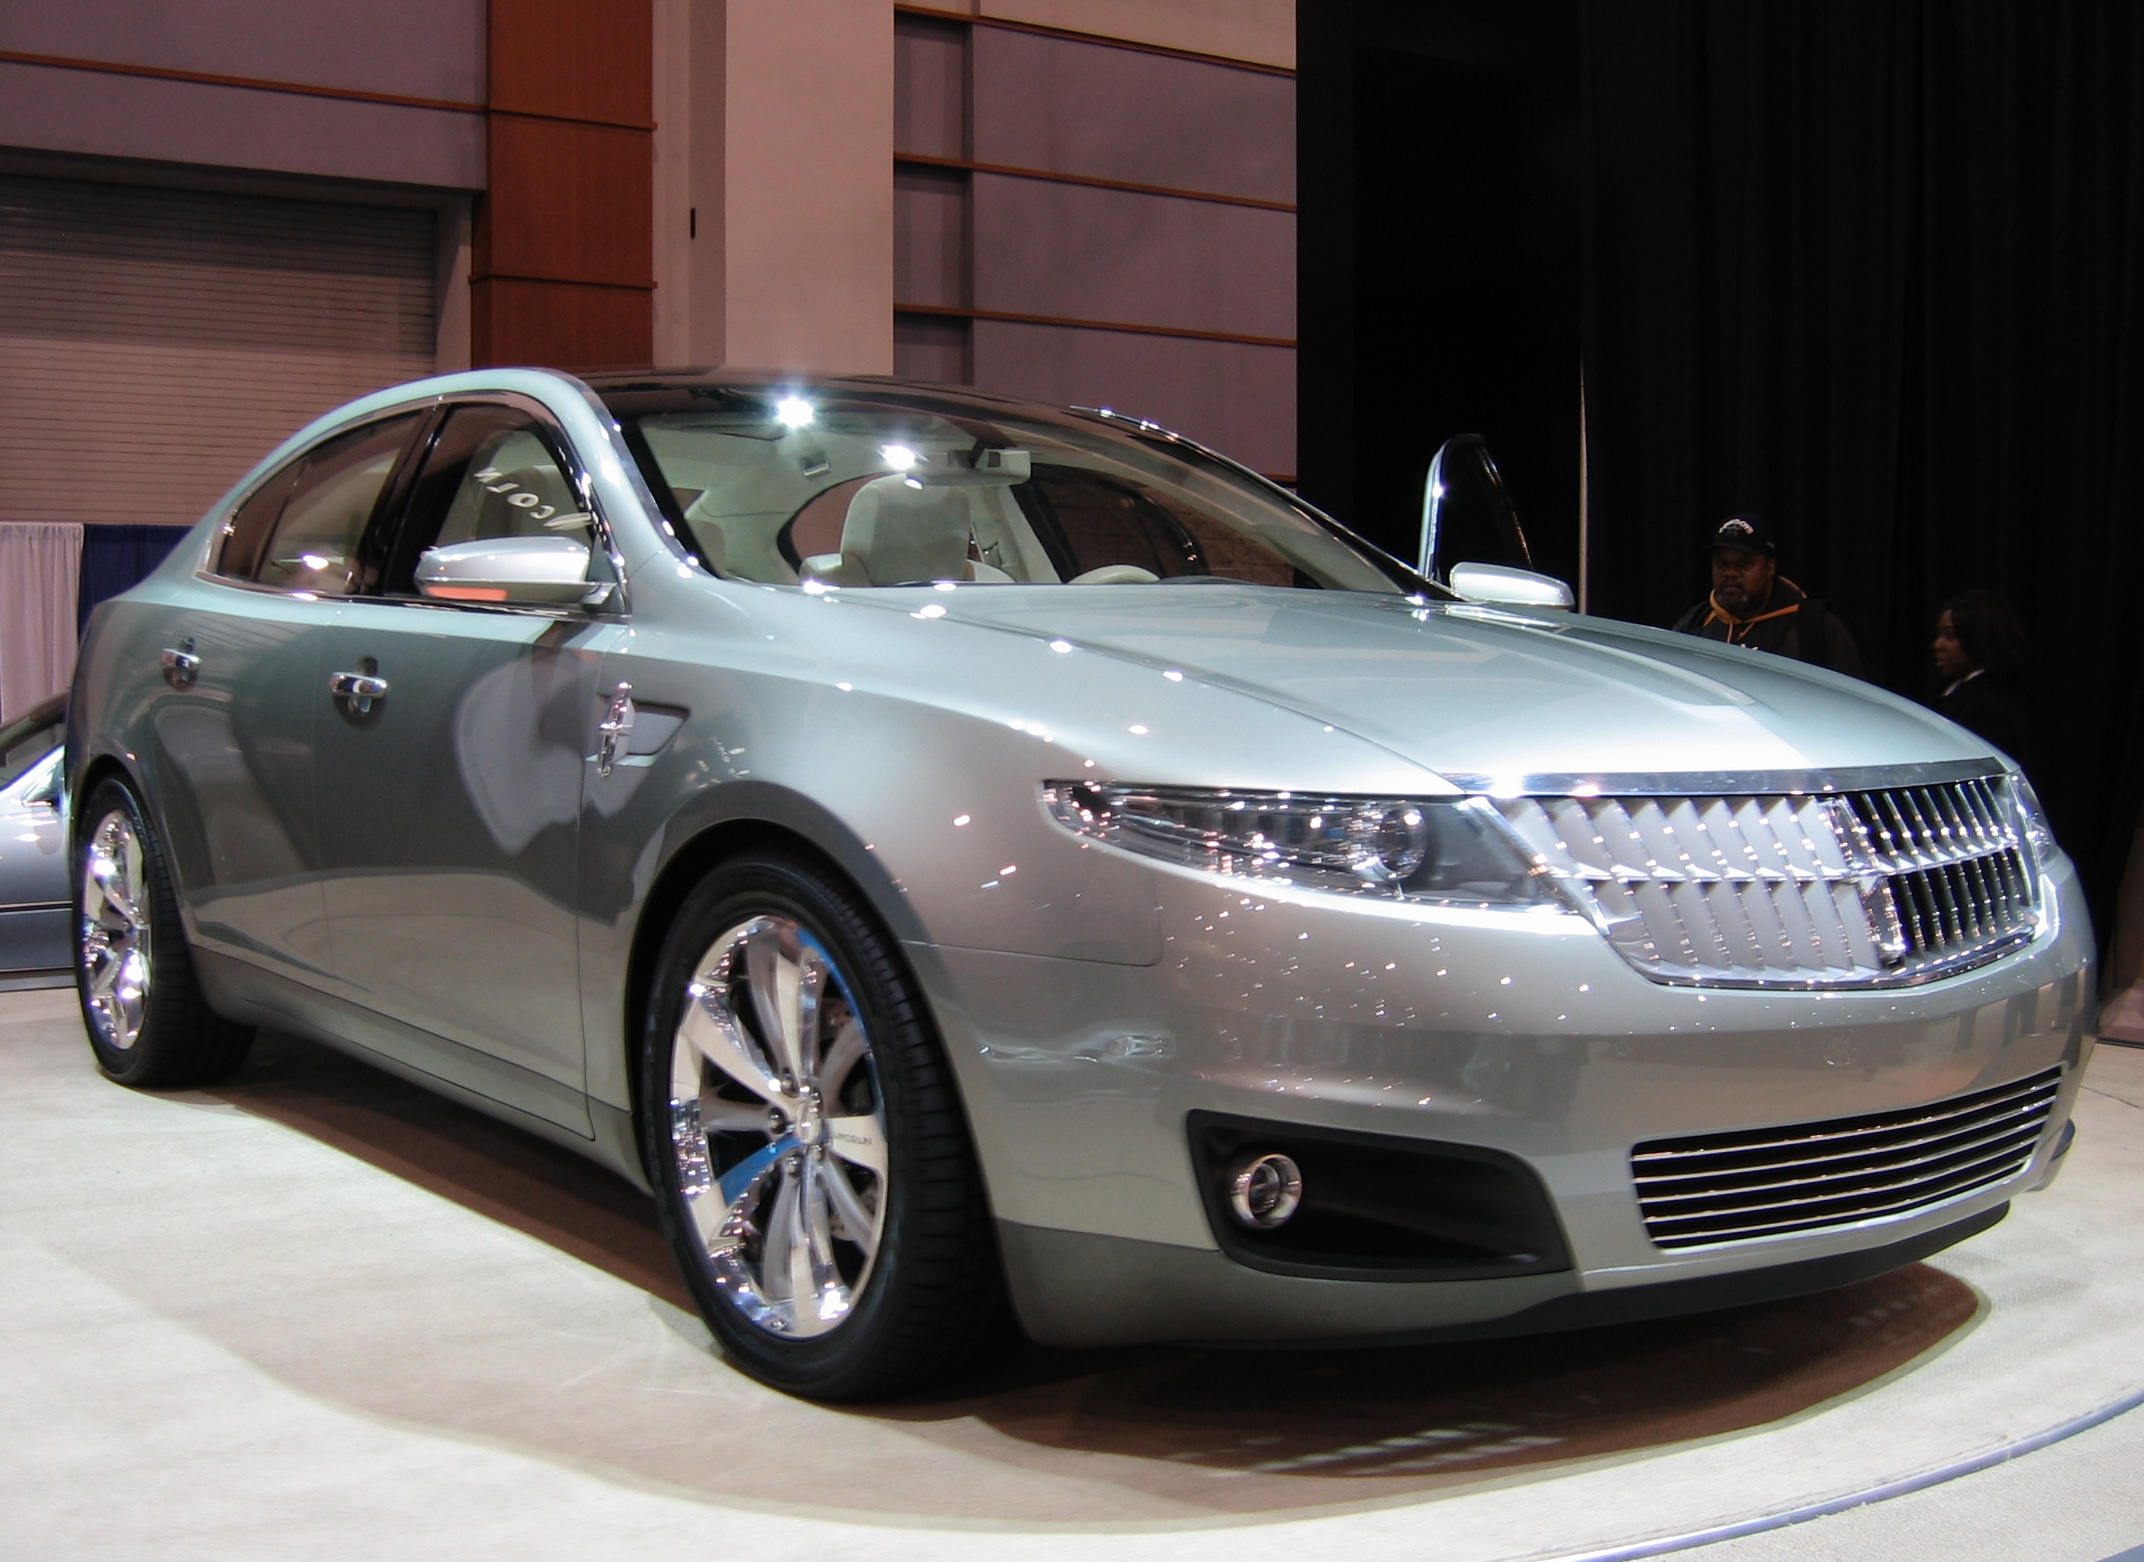 http://upload.wikimedia.org/wikipedia/commons/4/46/Washauto_2007_lincoln_mks.jpg